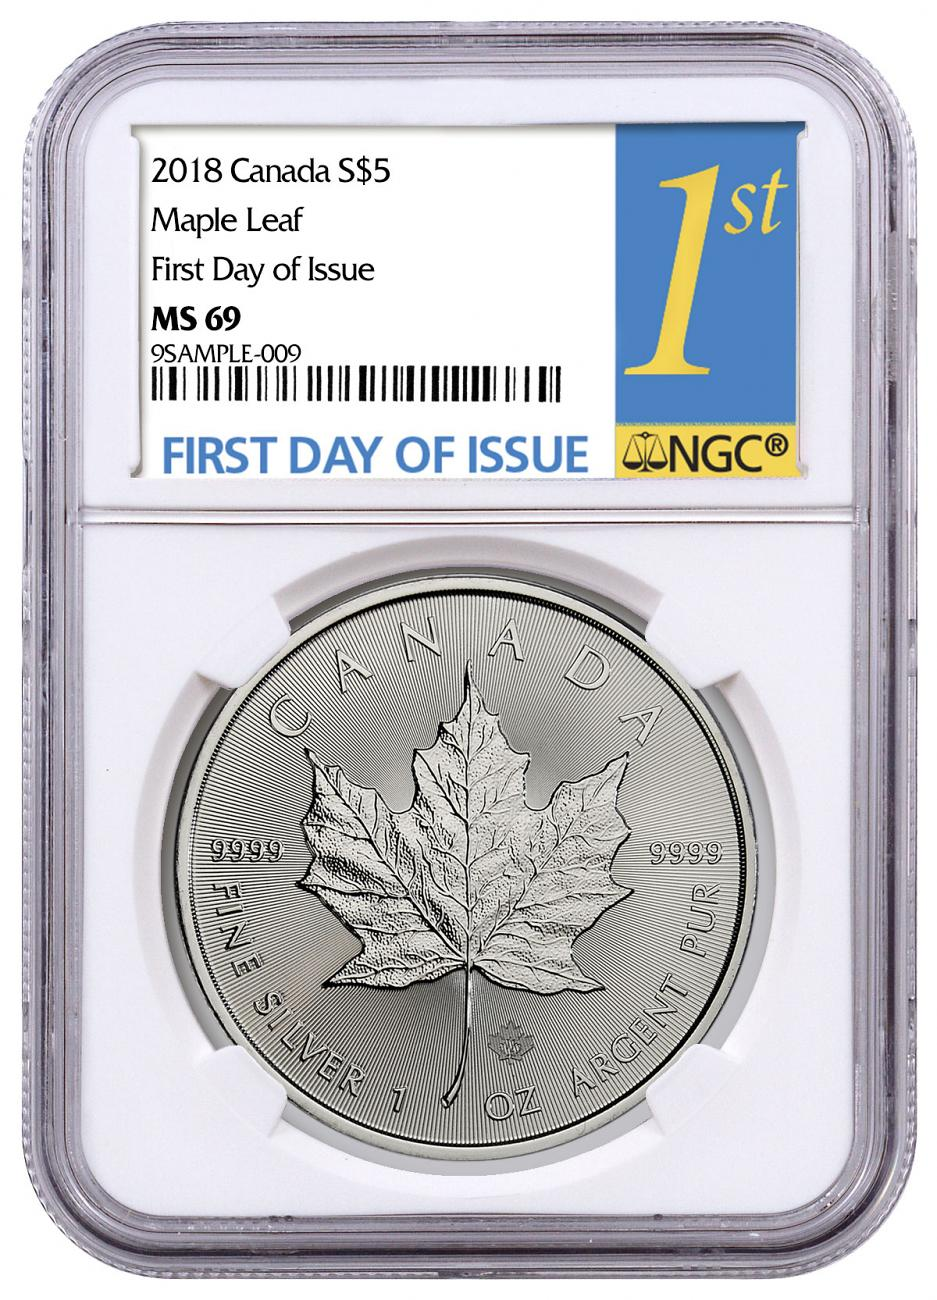 2018 Canada 1 oz Silver Maple Leaf $5 Coin NGC MS69 FDI